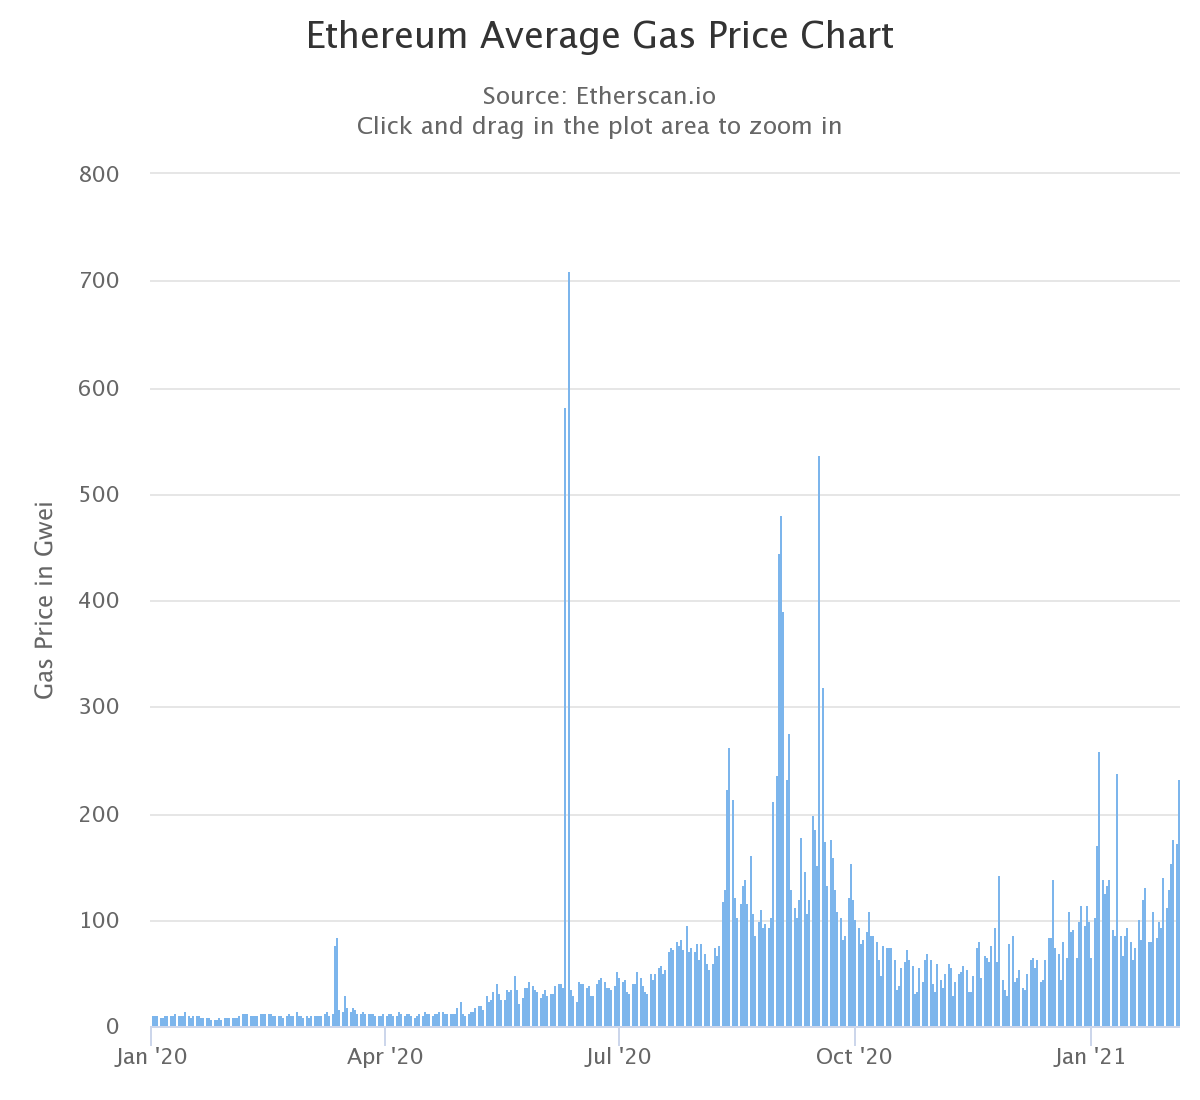 Ethereum gas prices from Jan. 1, 2020, to Feb. 4, 2021. Source: Etherscan